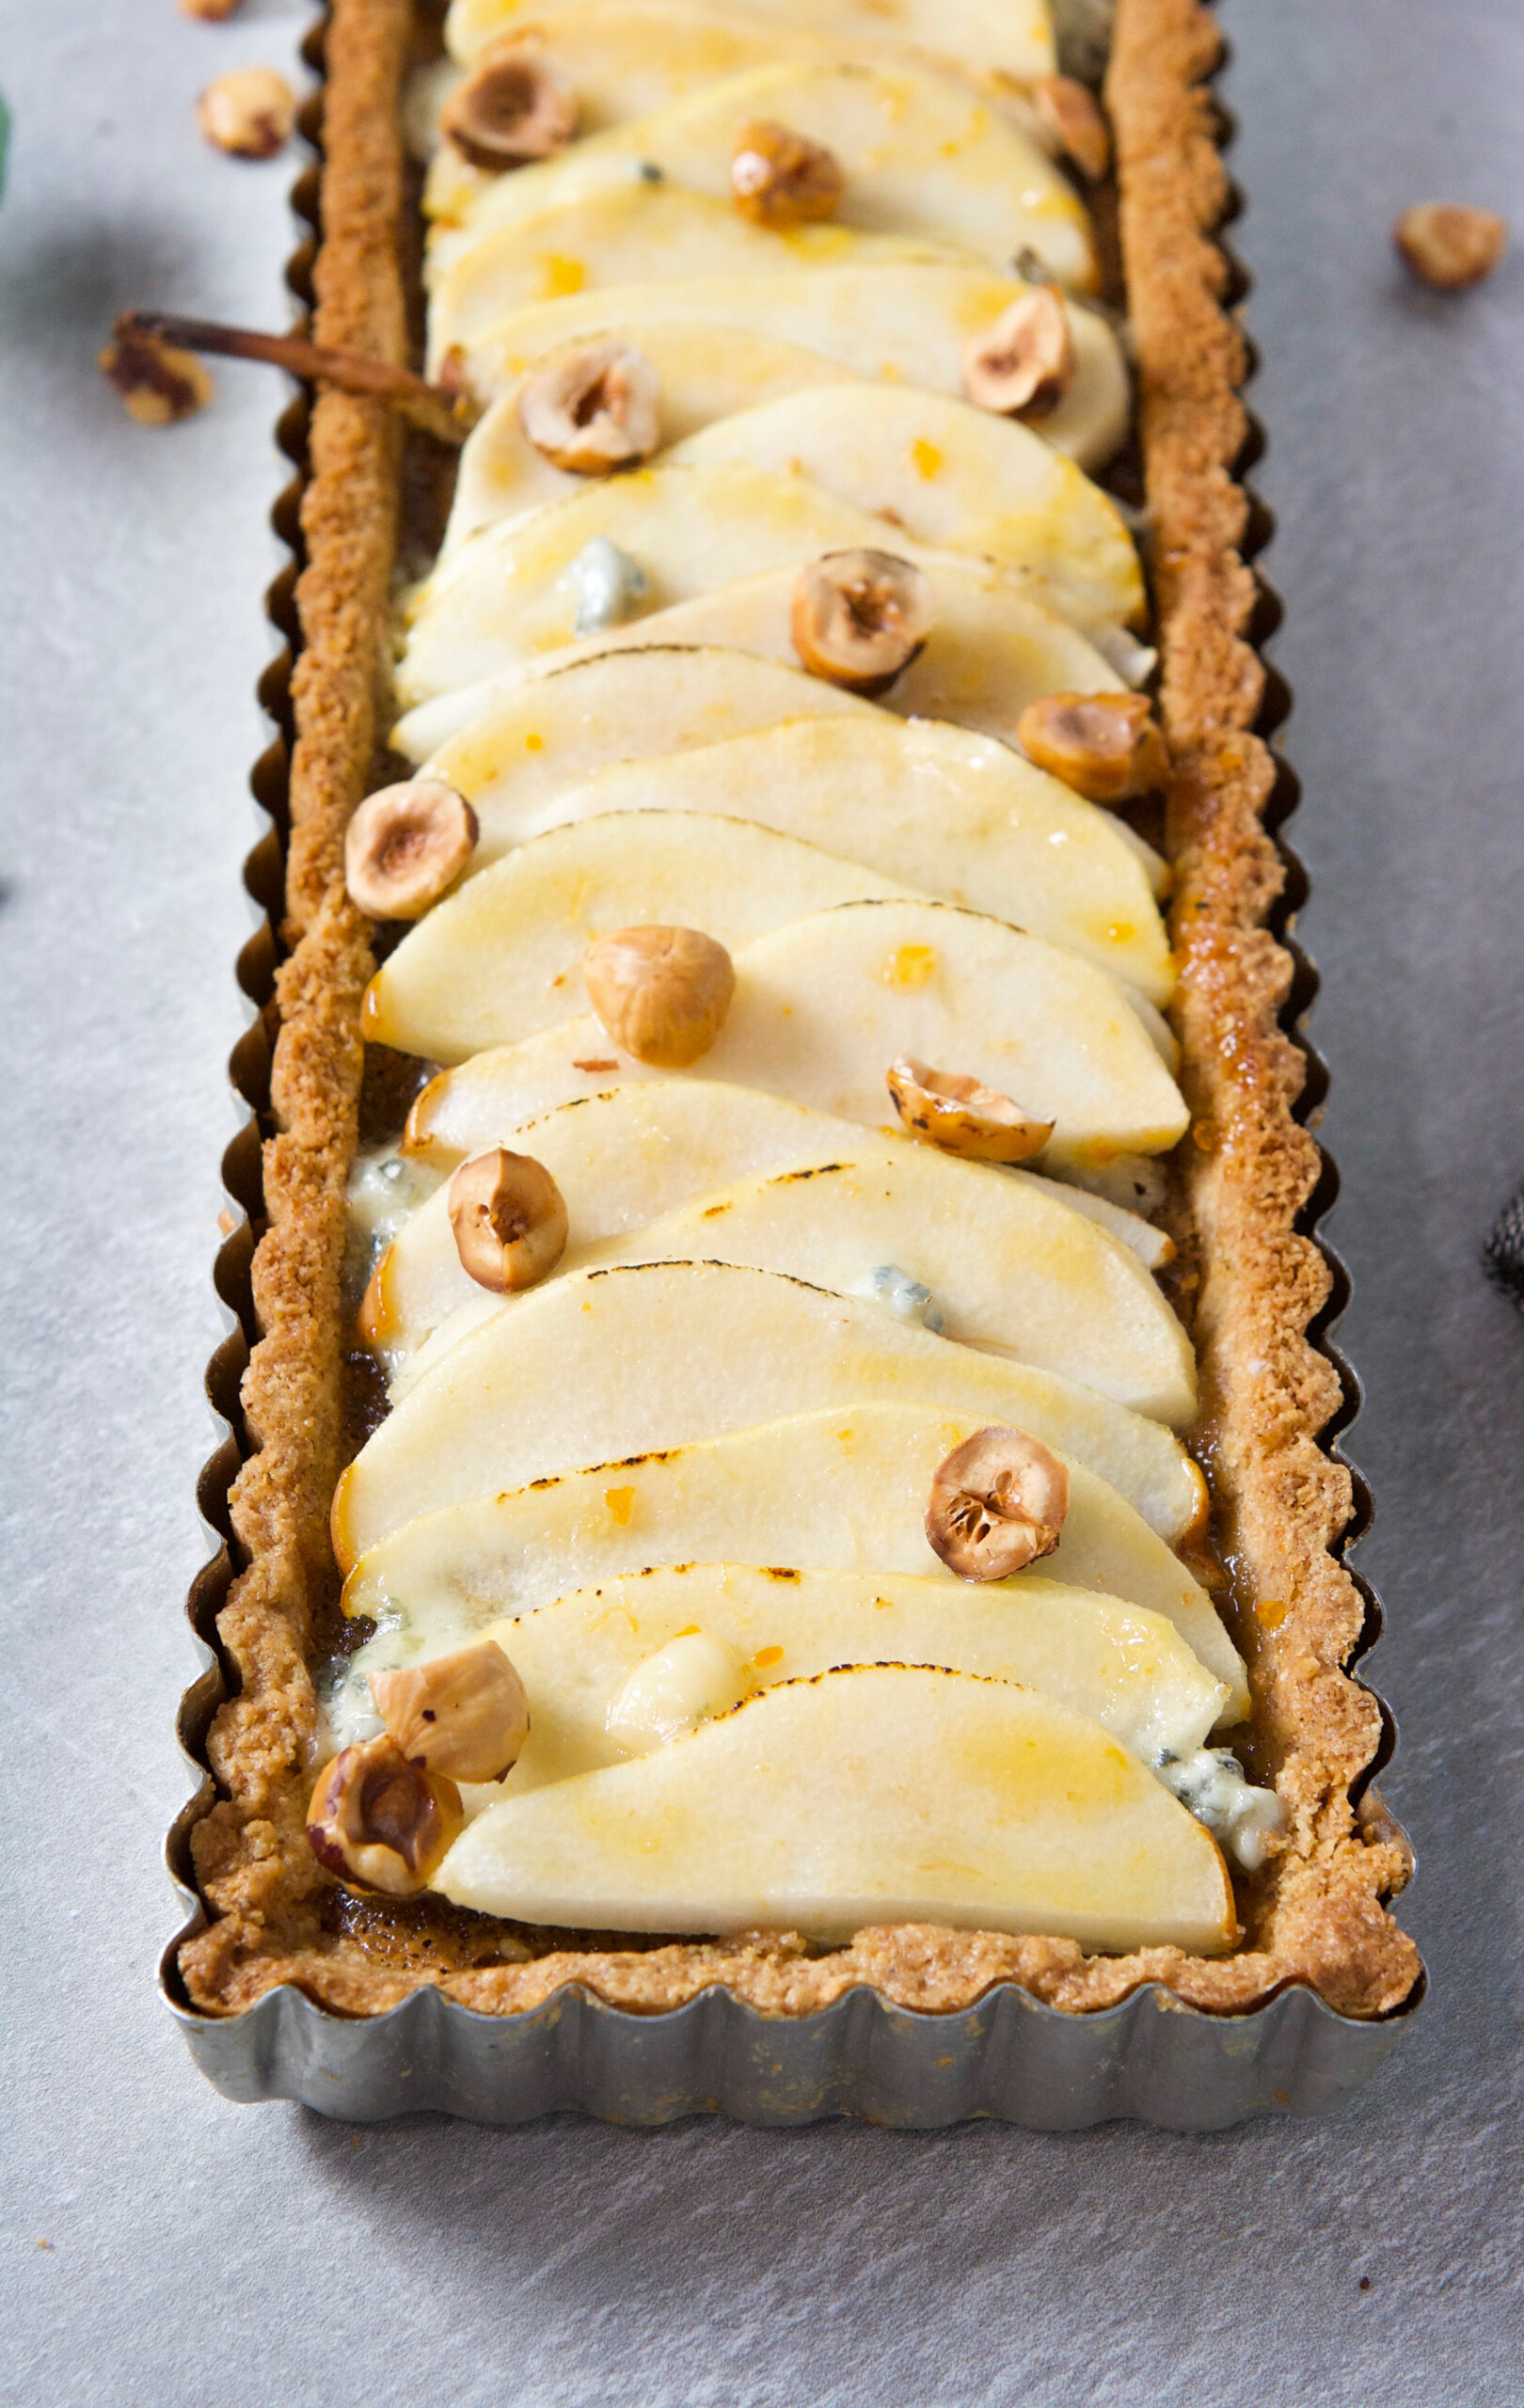 This Pear, Hazelnut and Blue Cheese Tart has everything going for it. It's nutty, lightly sweetened, and just a touch of salty, making it a perfect treat to finish off any meal.   Zestful Kitchen